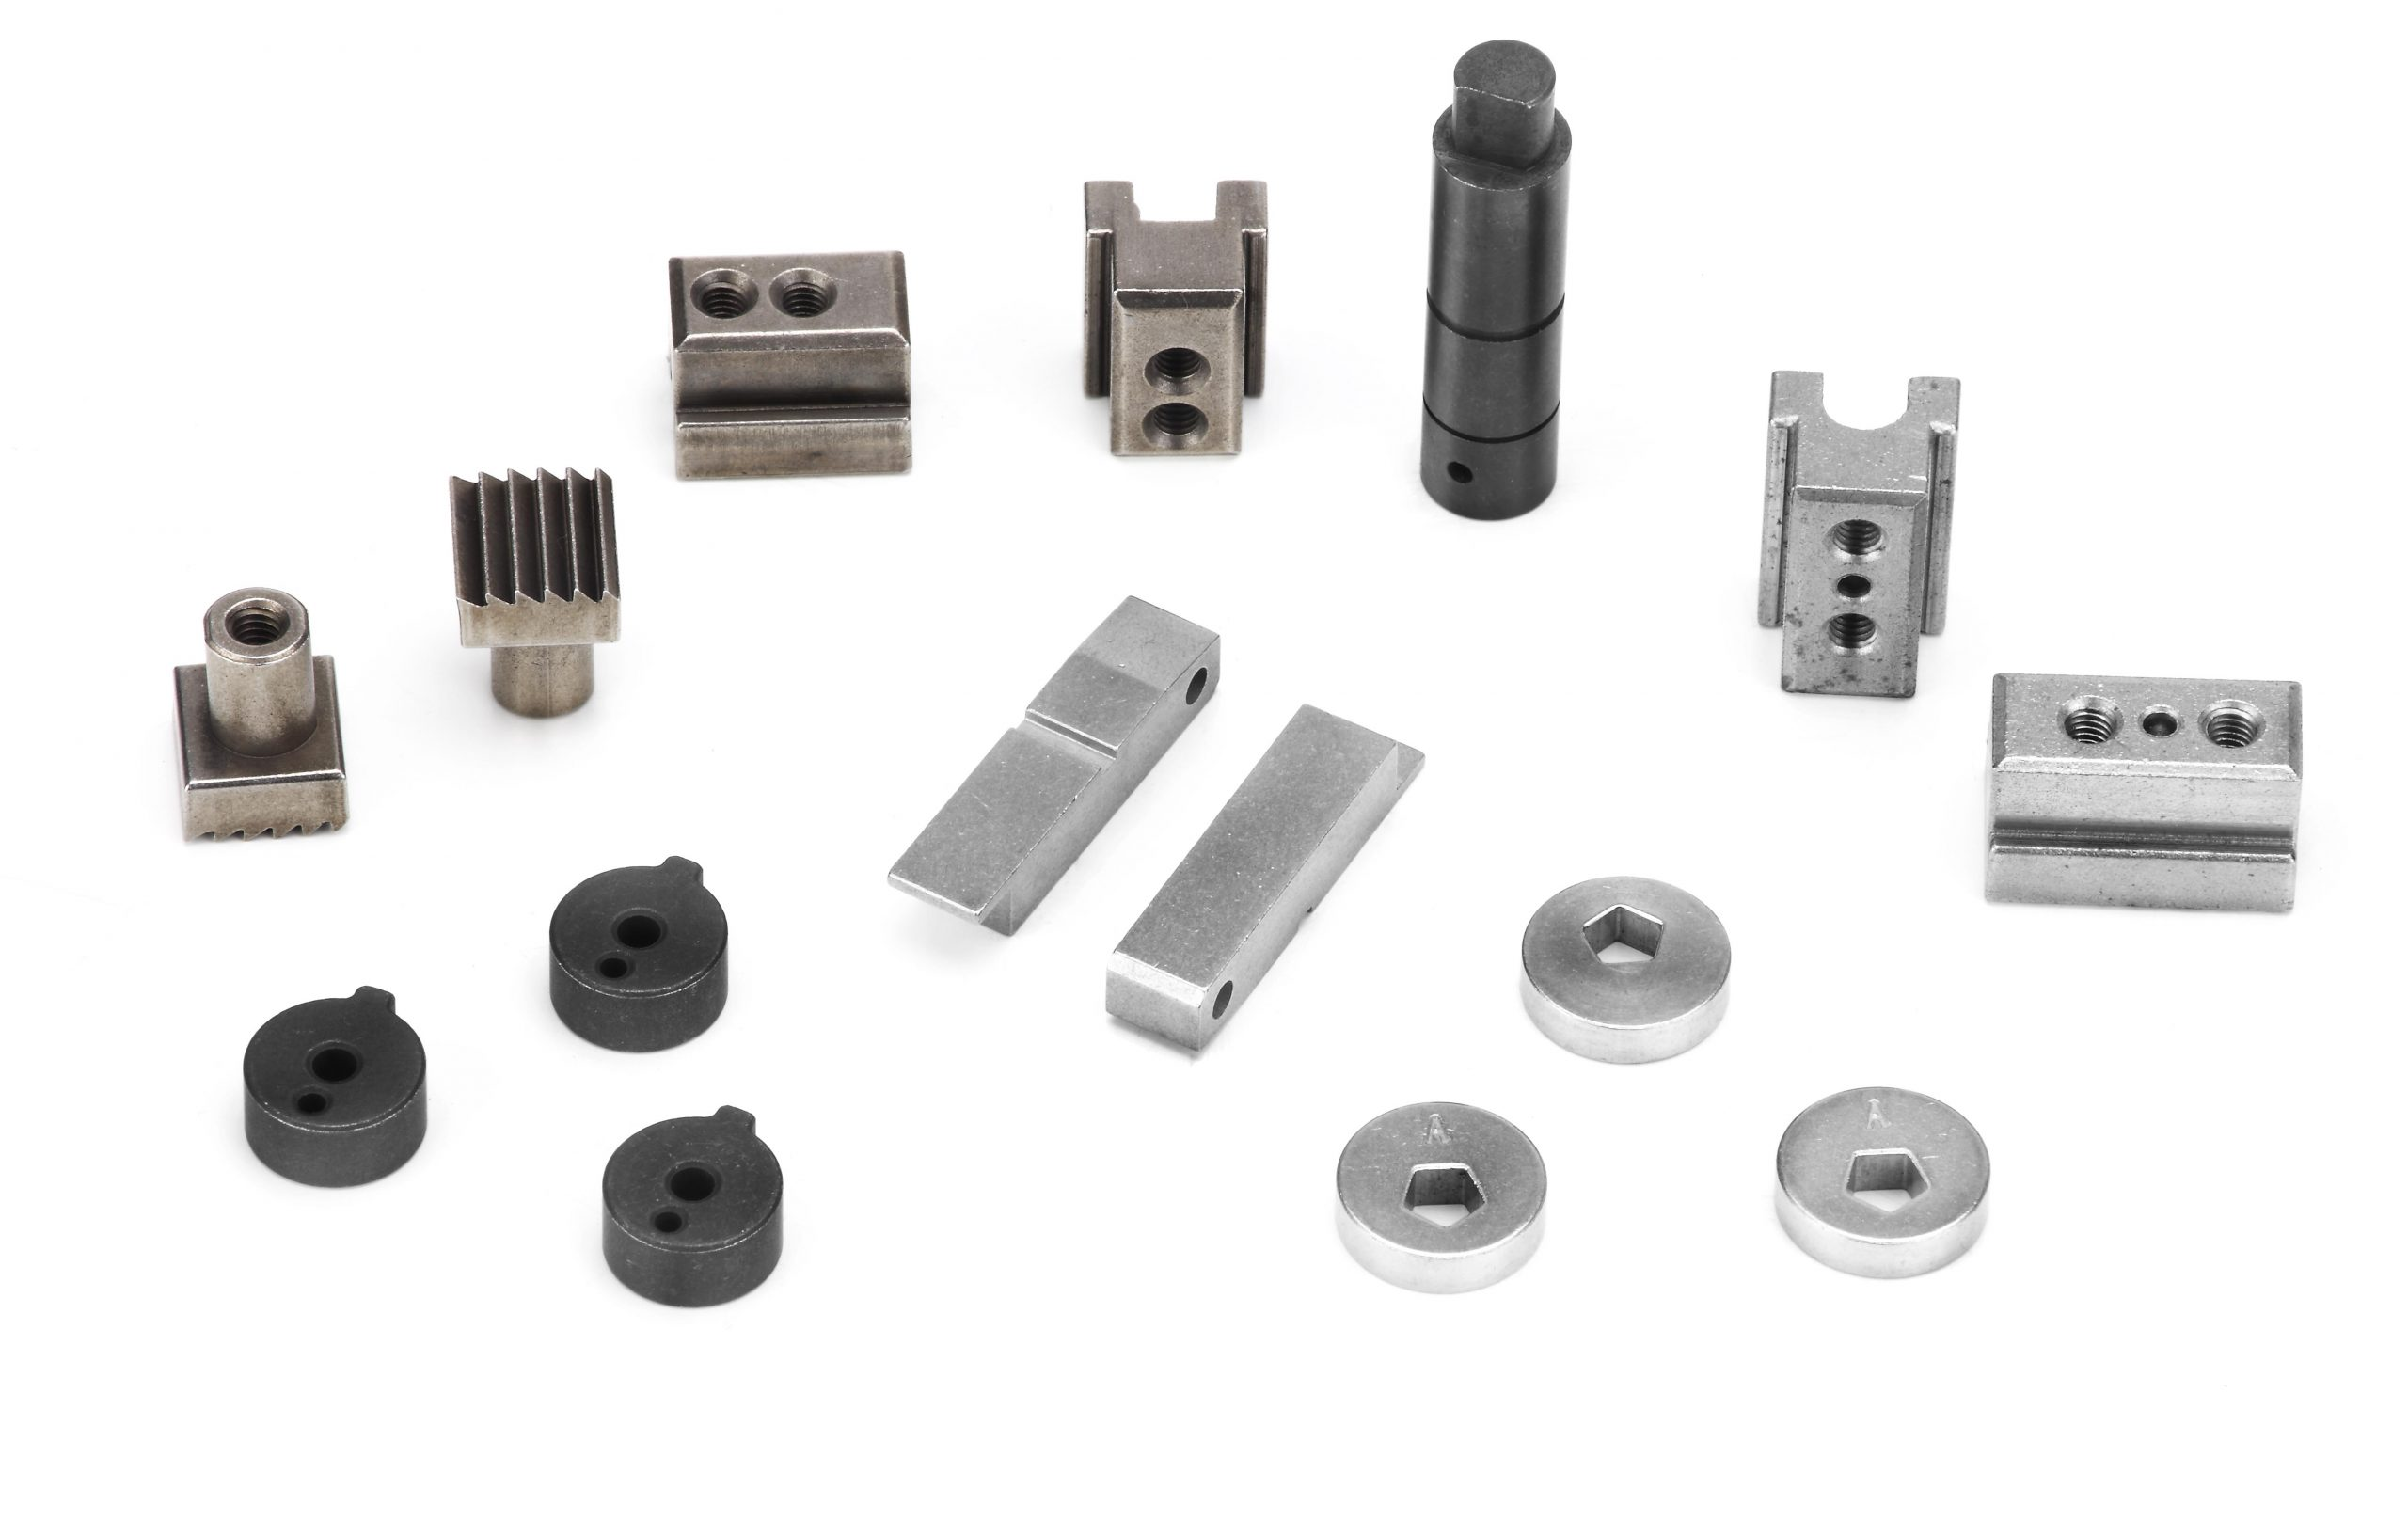 Sintered Sewing Machine Components